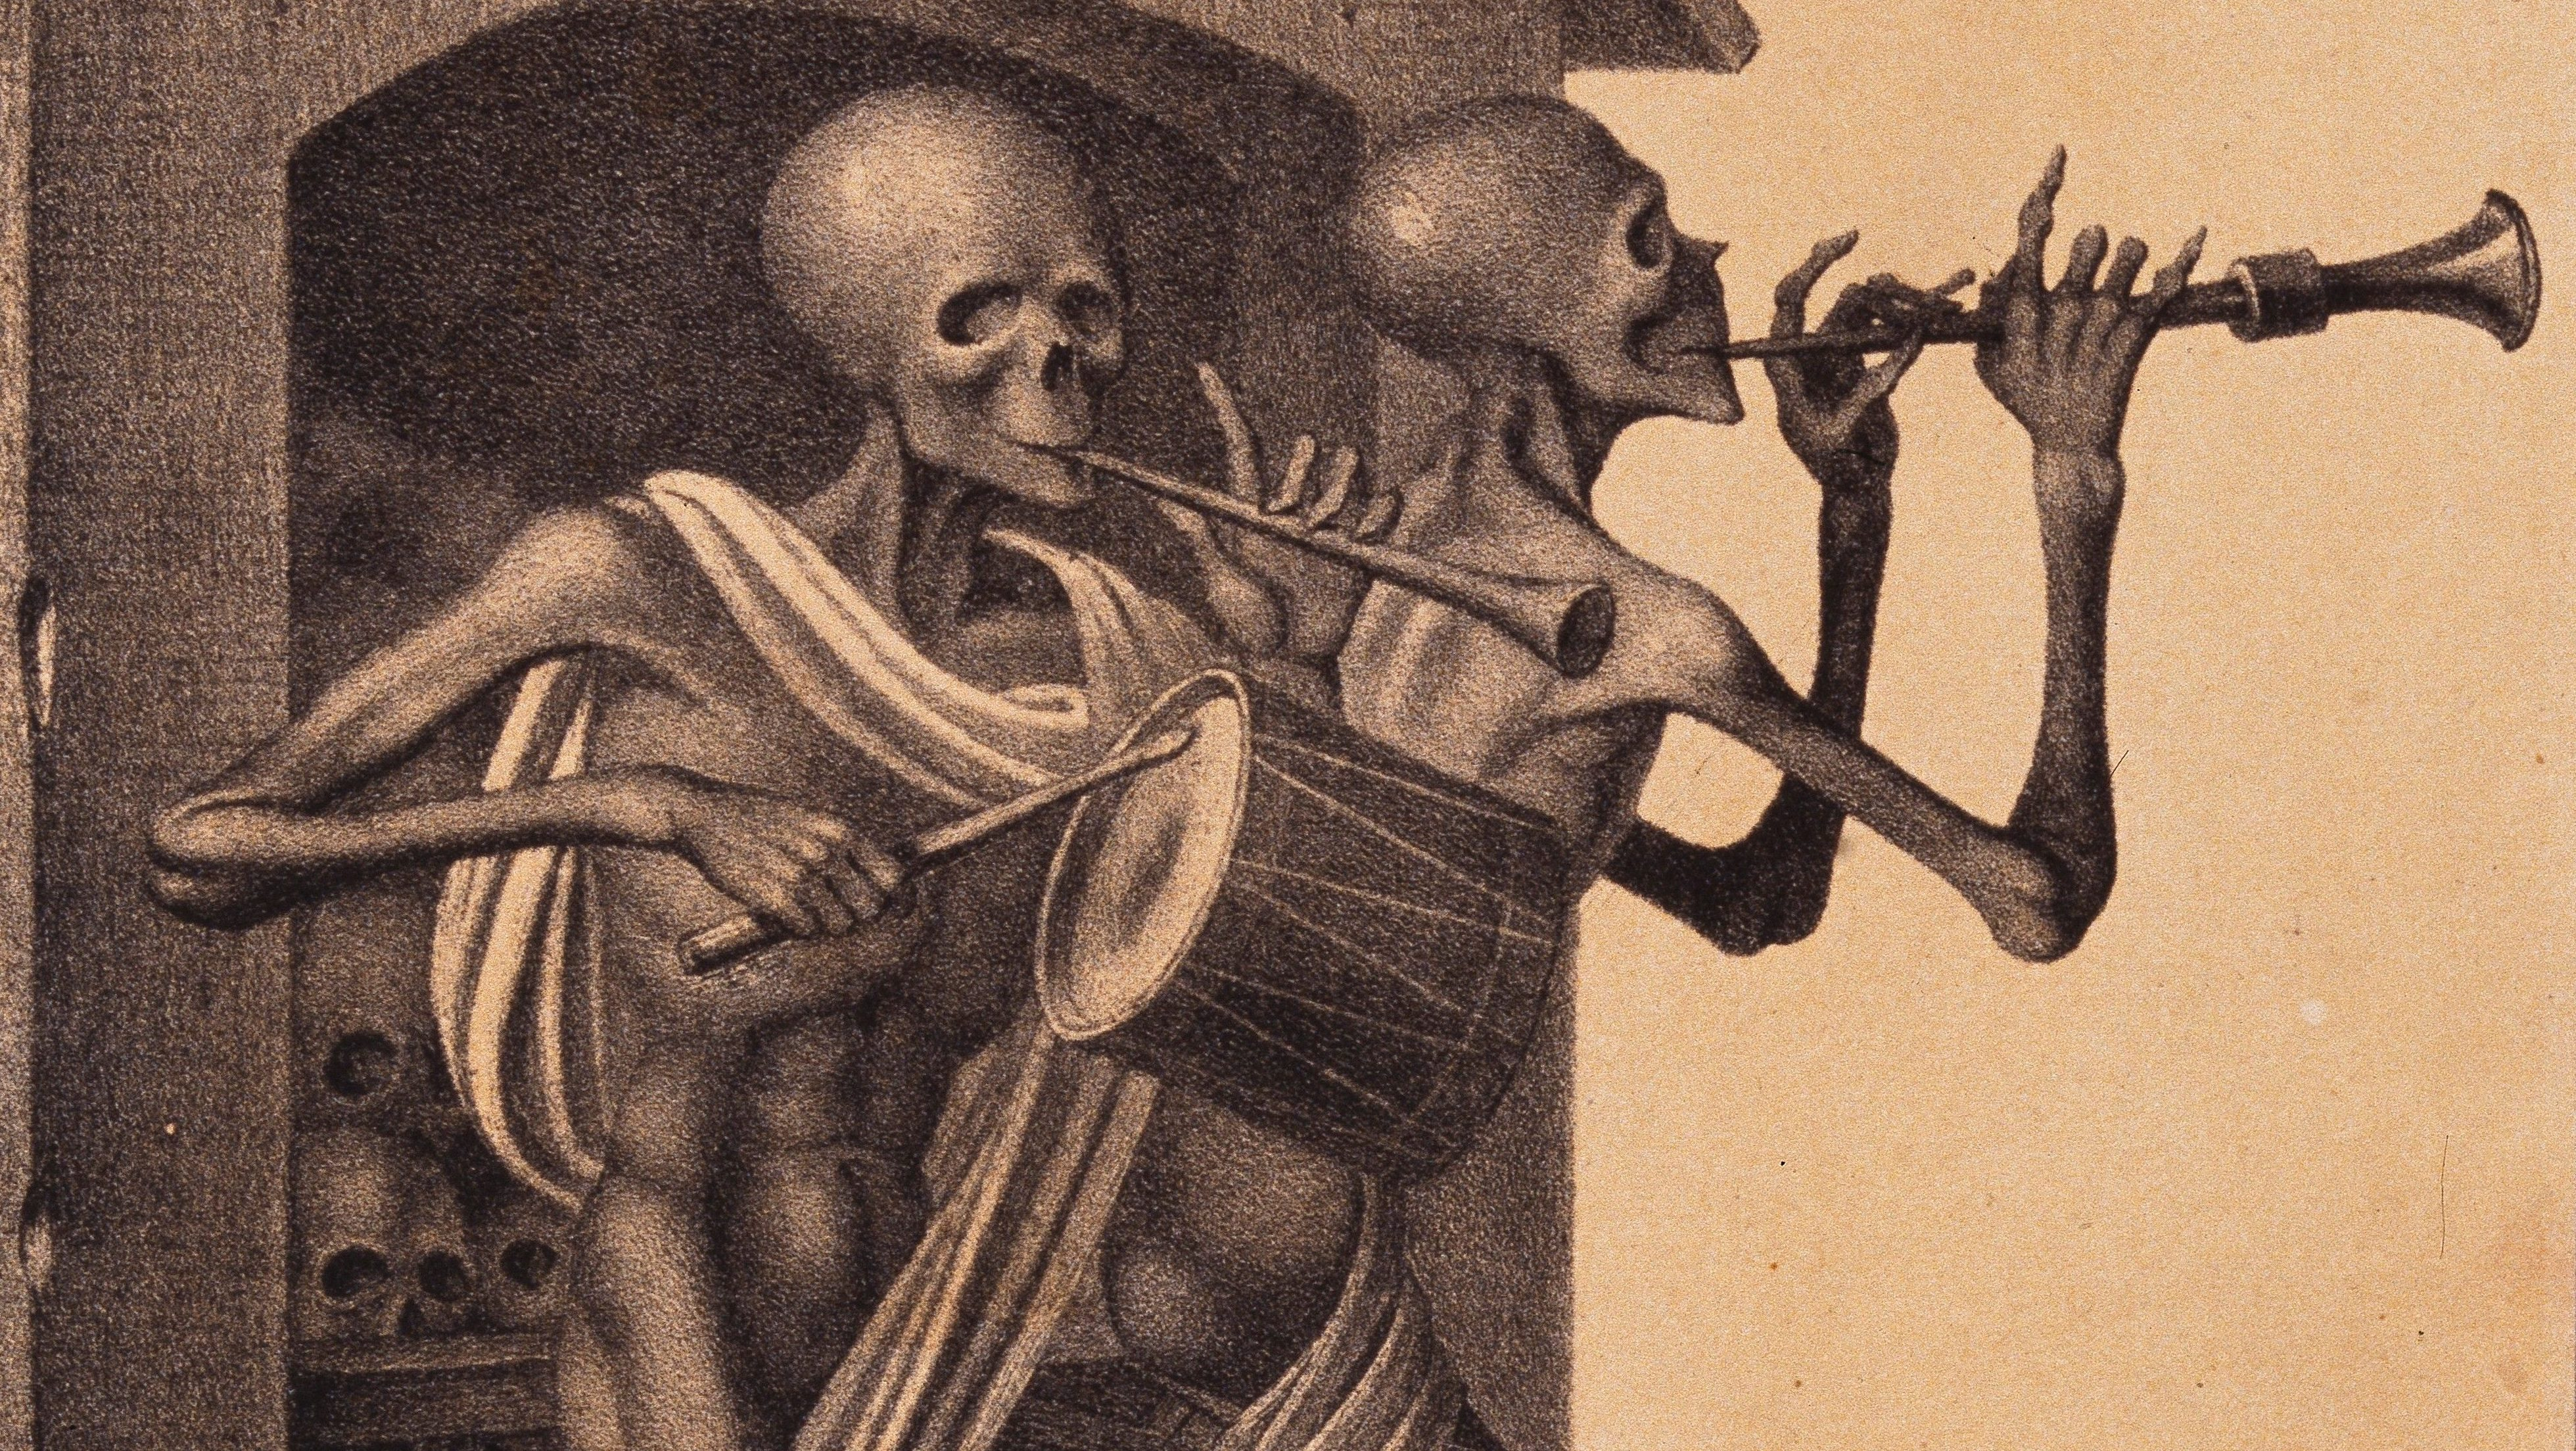 Devil's interval: What makes music sound scary? — Quartzy